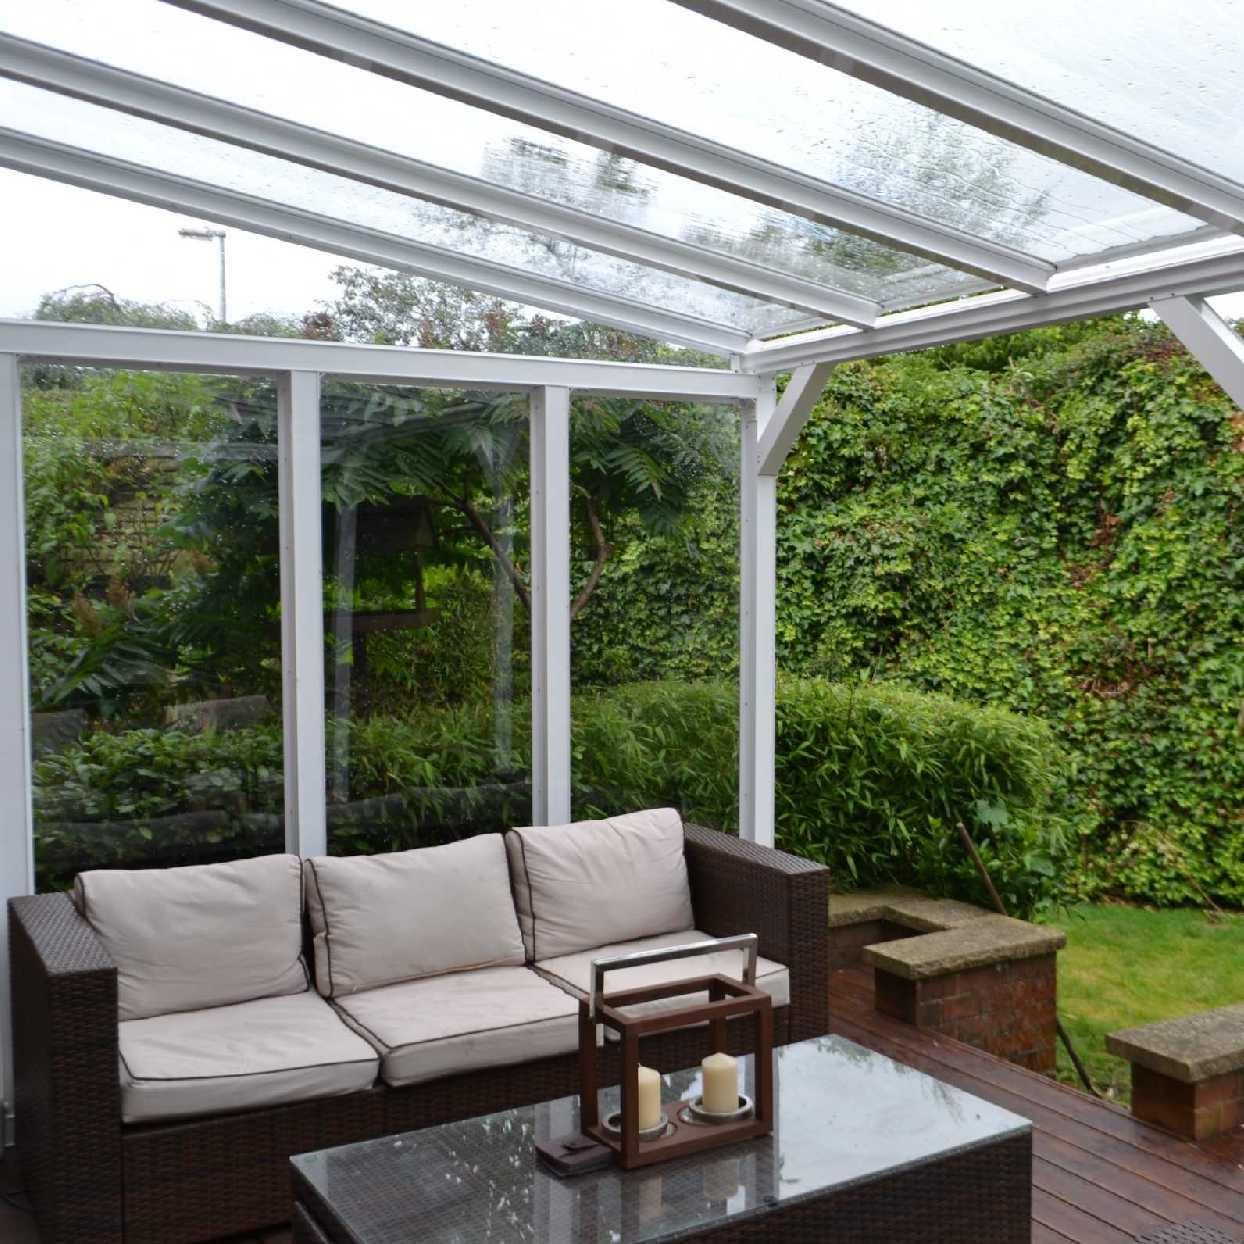 Omega Smart White Lean-To Canopy UNGLAZED for 6mm Glazing - 4.9m (W) x 2.0m (P), (3) Supporting Posts